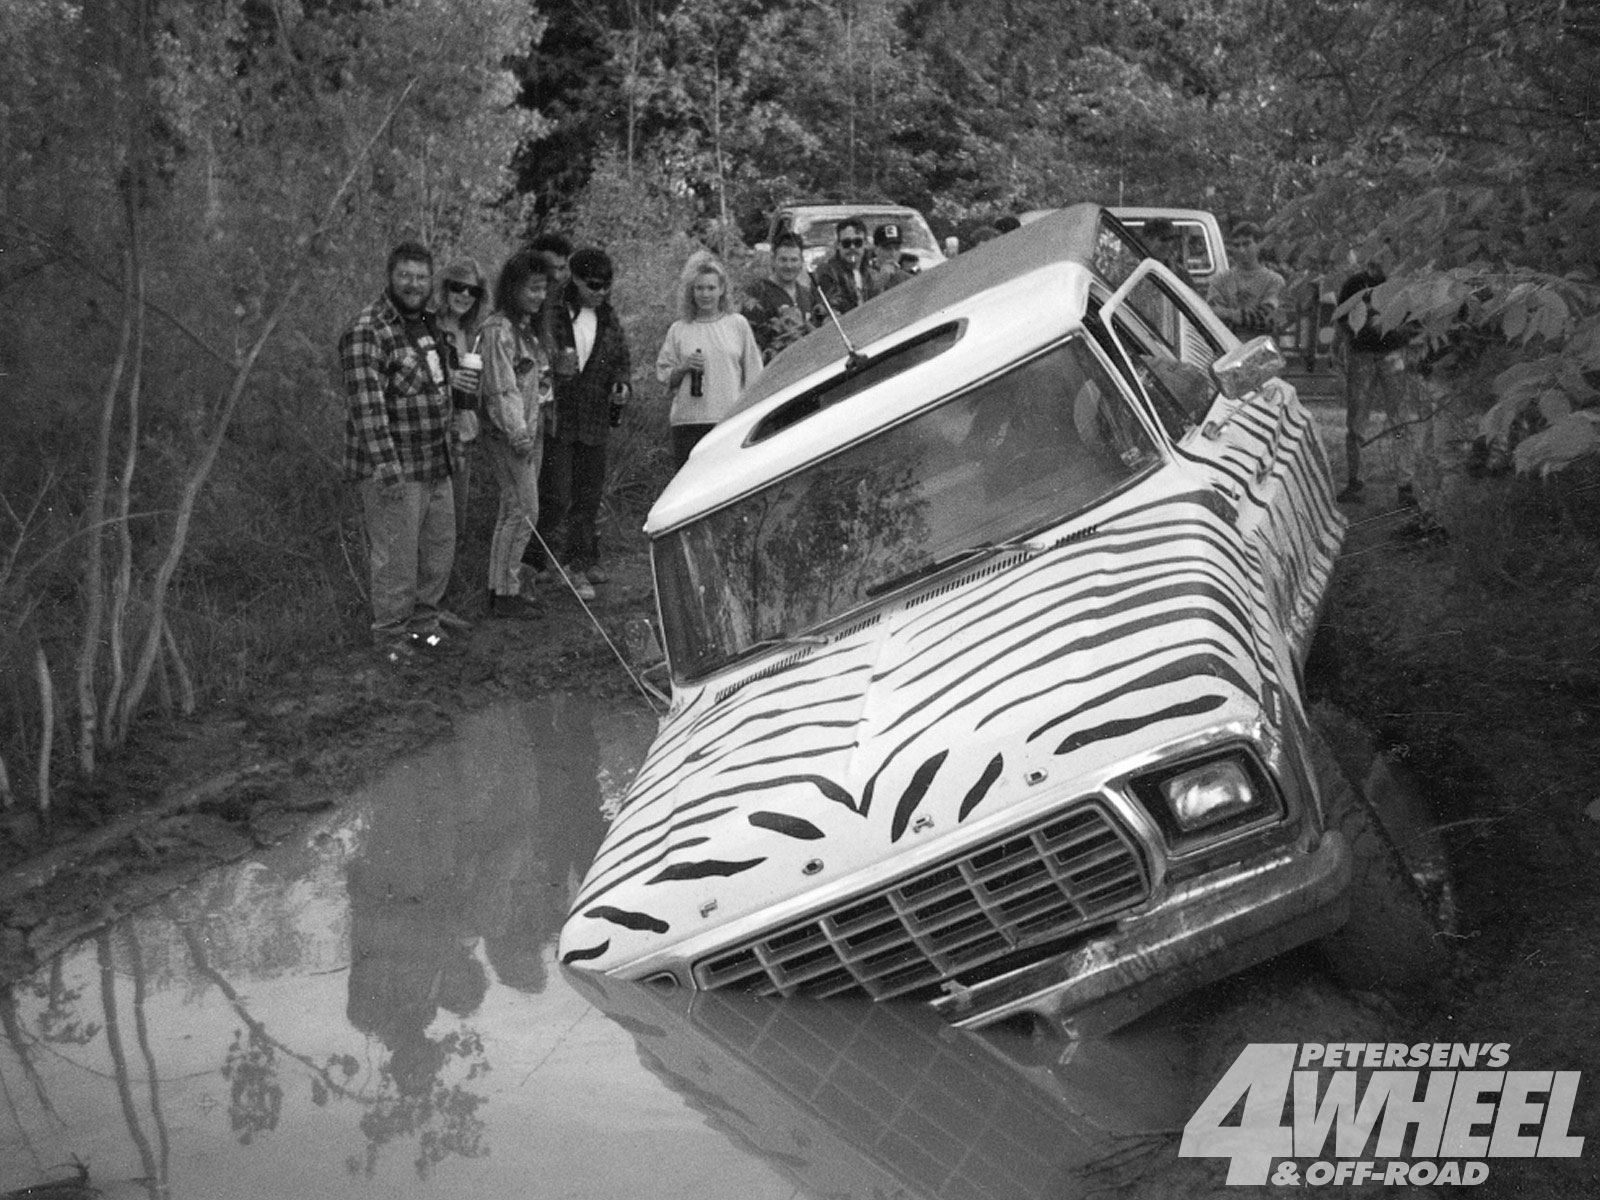 131 9401 01+january 1994 tailgate+zebra ford bronco stuck in water